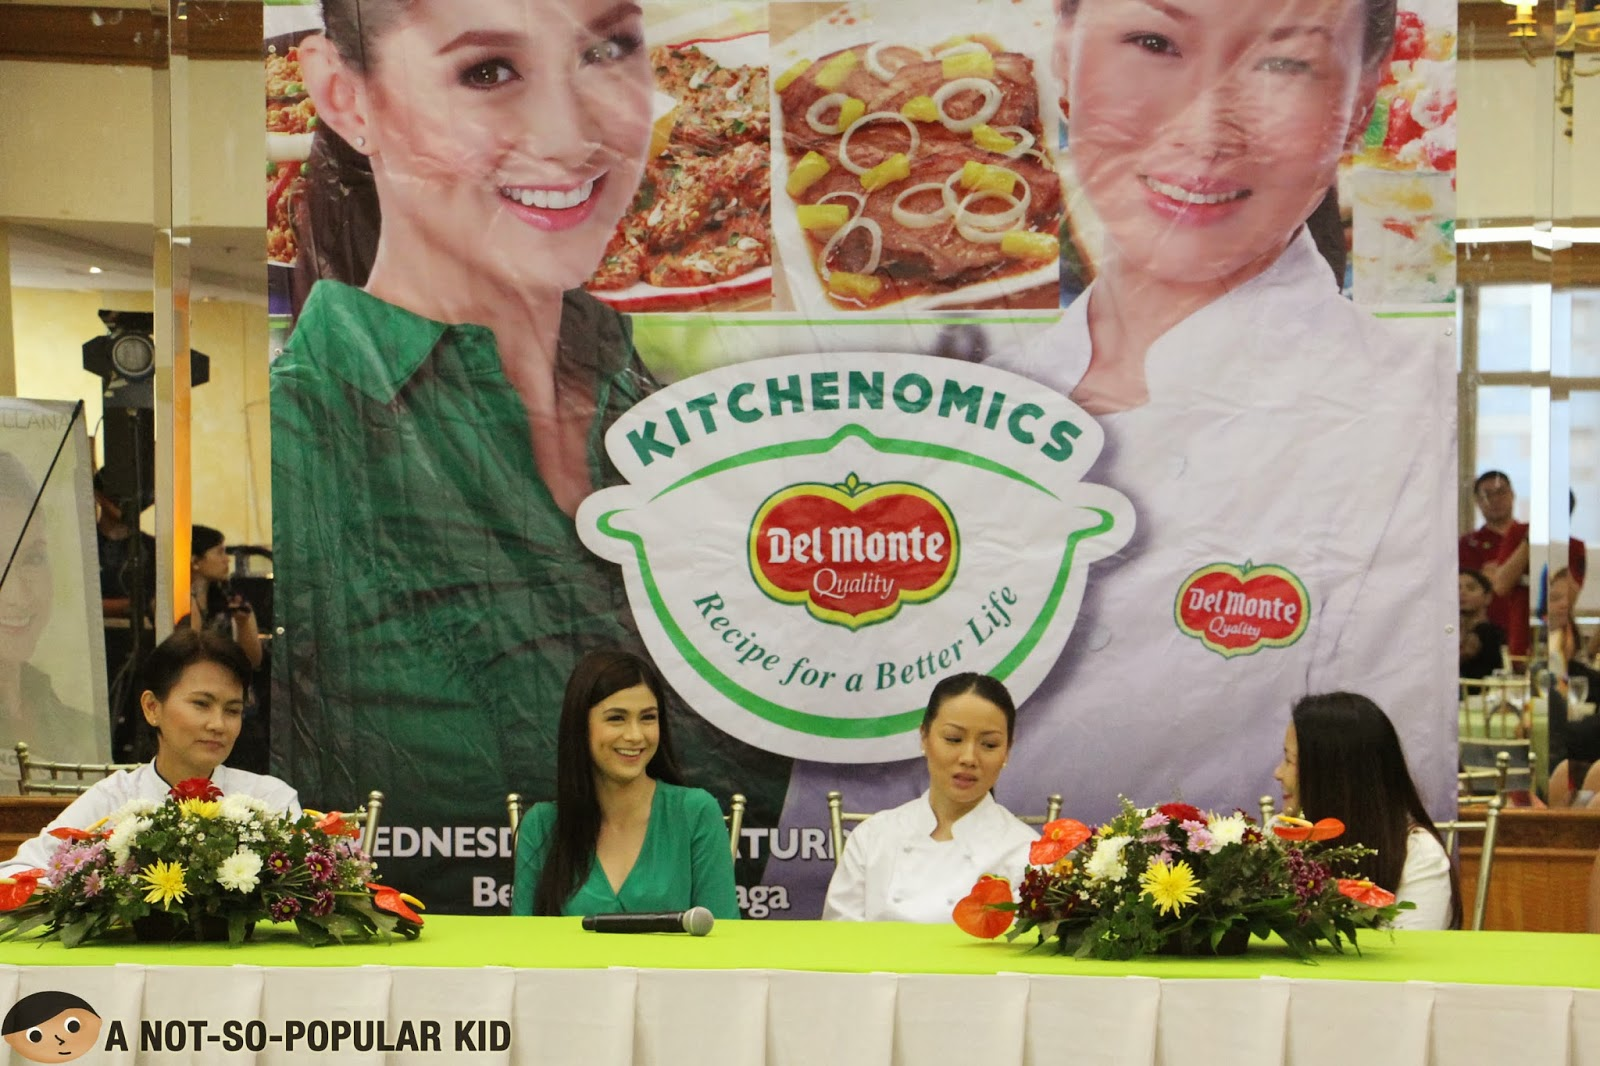 Del Monte Kitchenomics starring Ms. Carla Abellana and Chef Jackie Ang Po